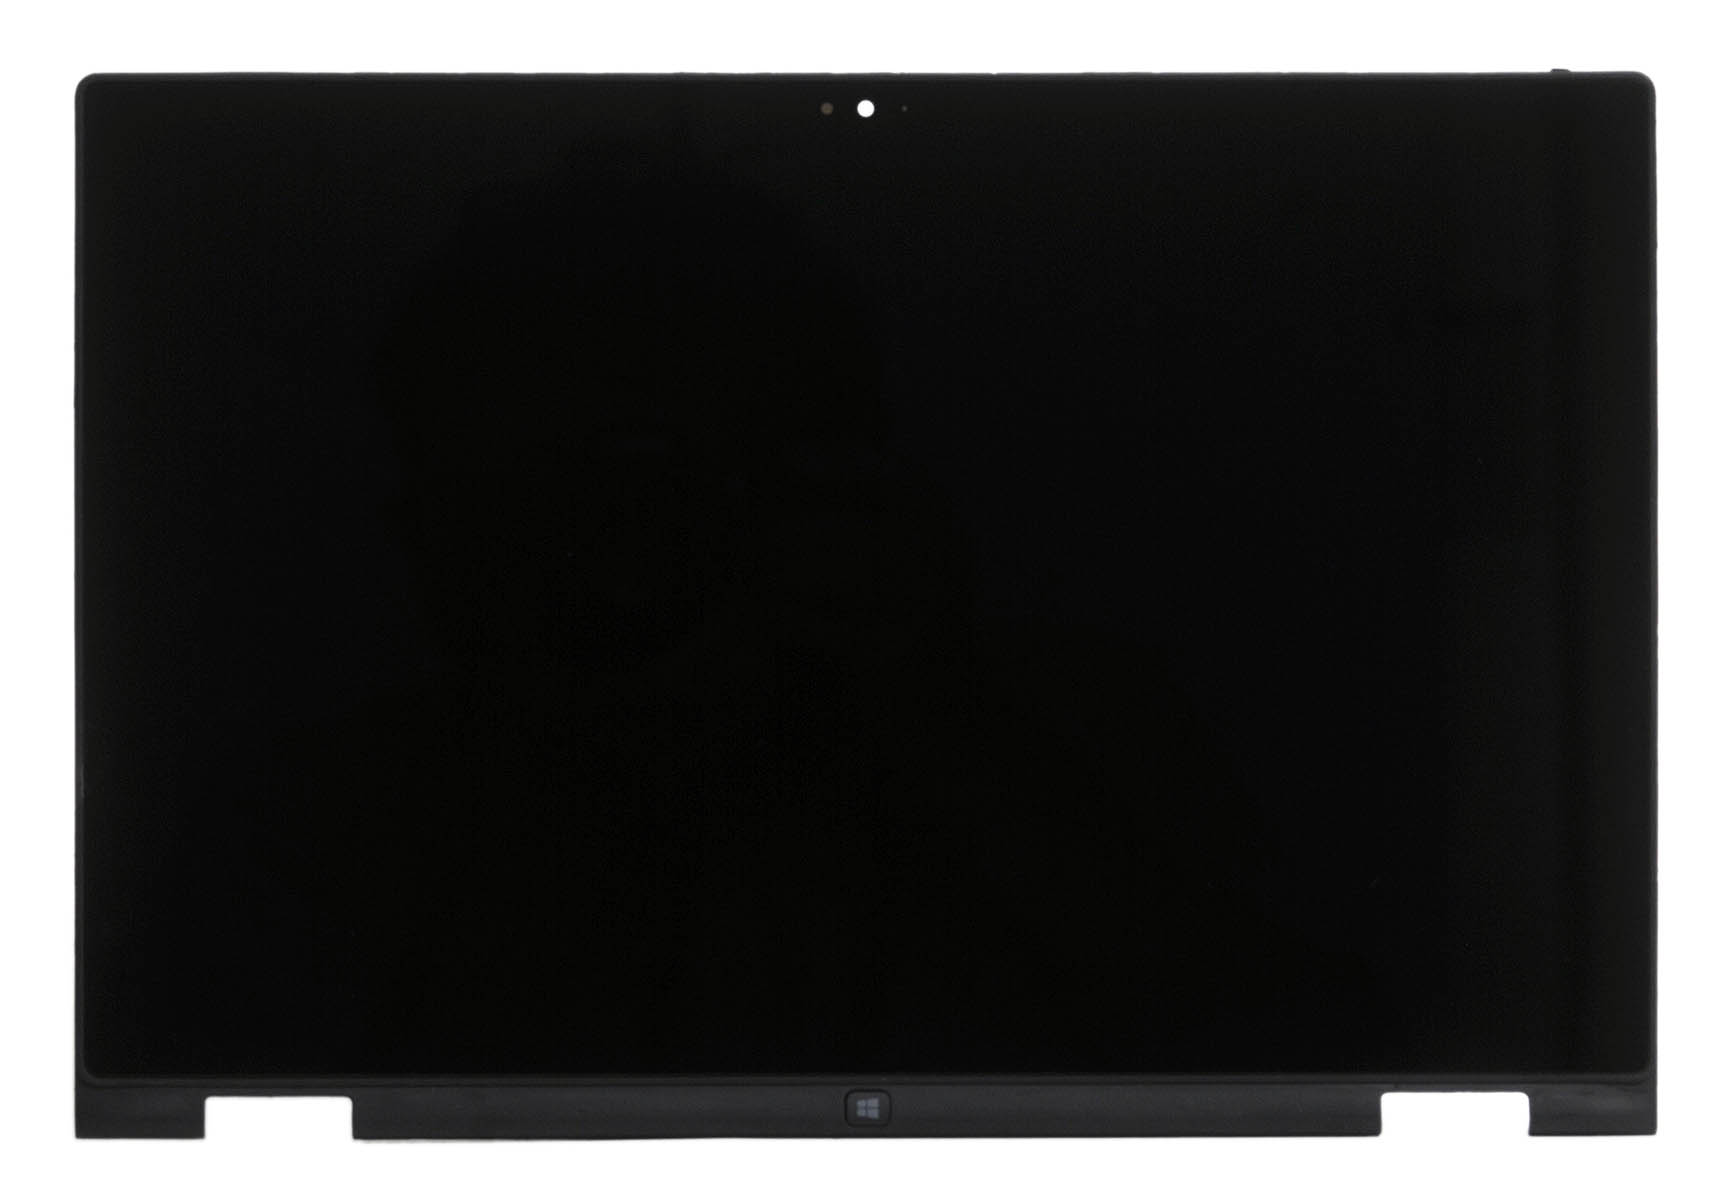 AUO New Dell Inspiron 13 7352 7353 7359 IPS 1080p FHD LCD Screen Digitizer Bezel